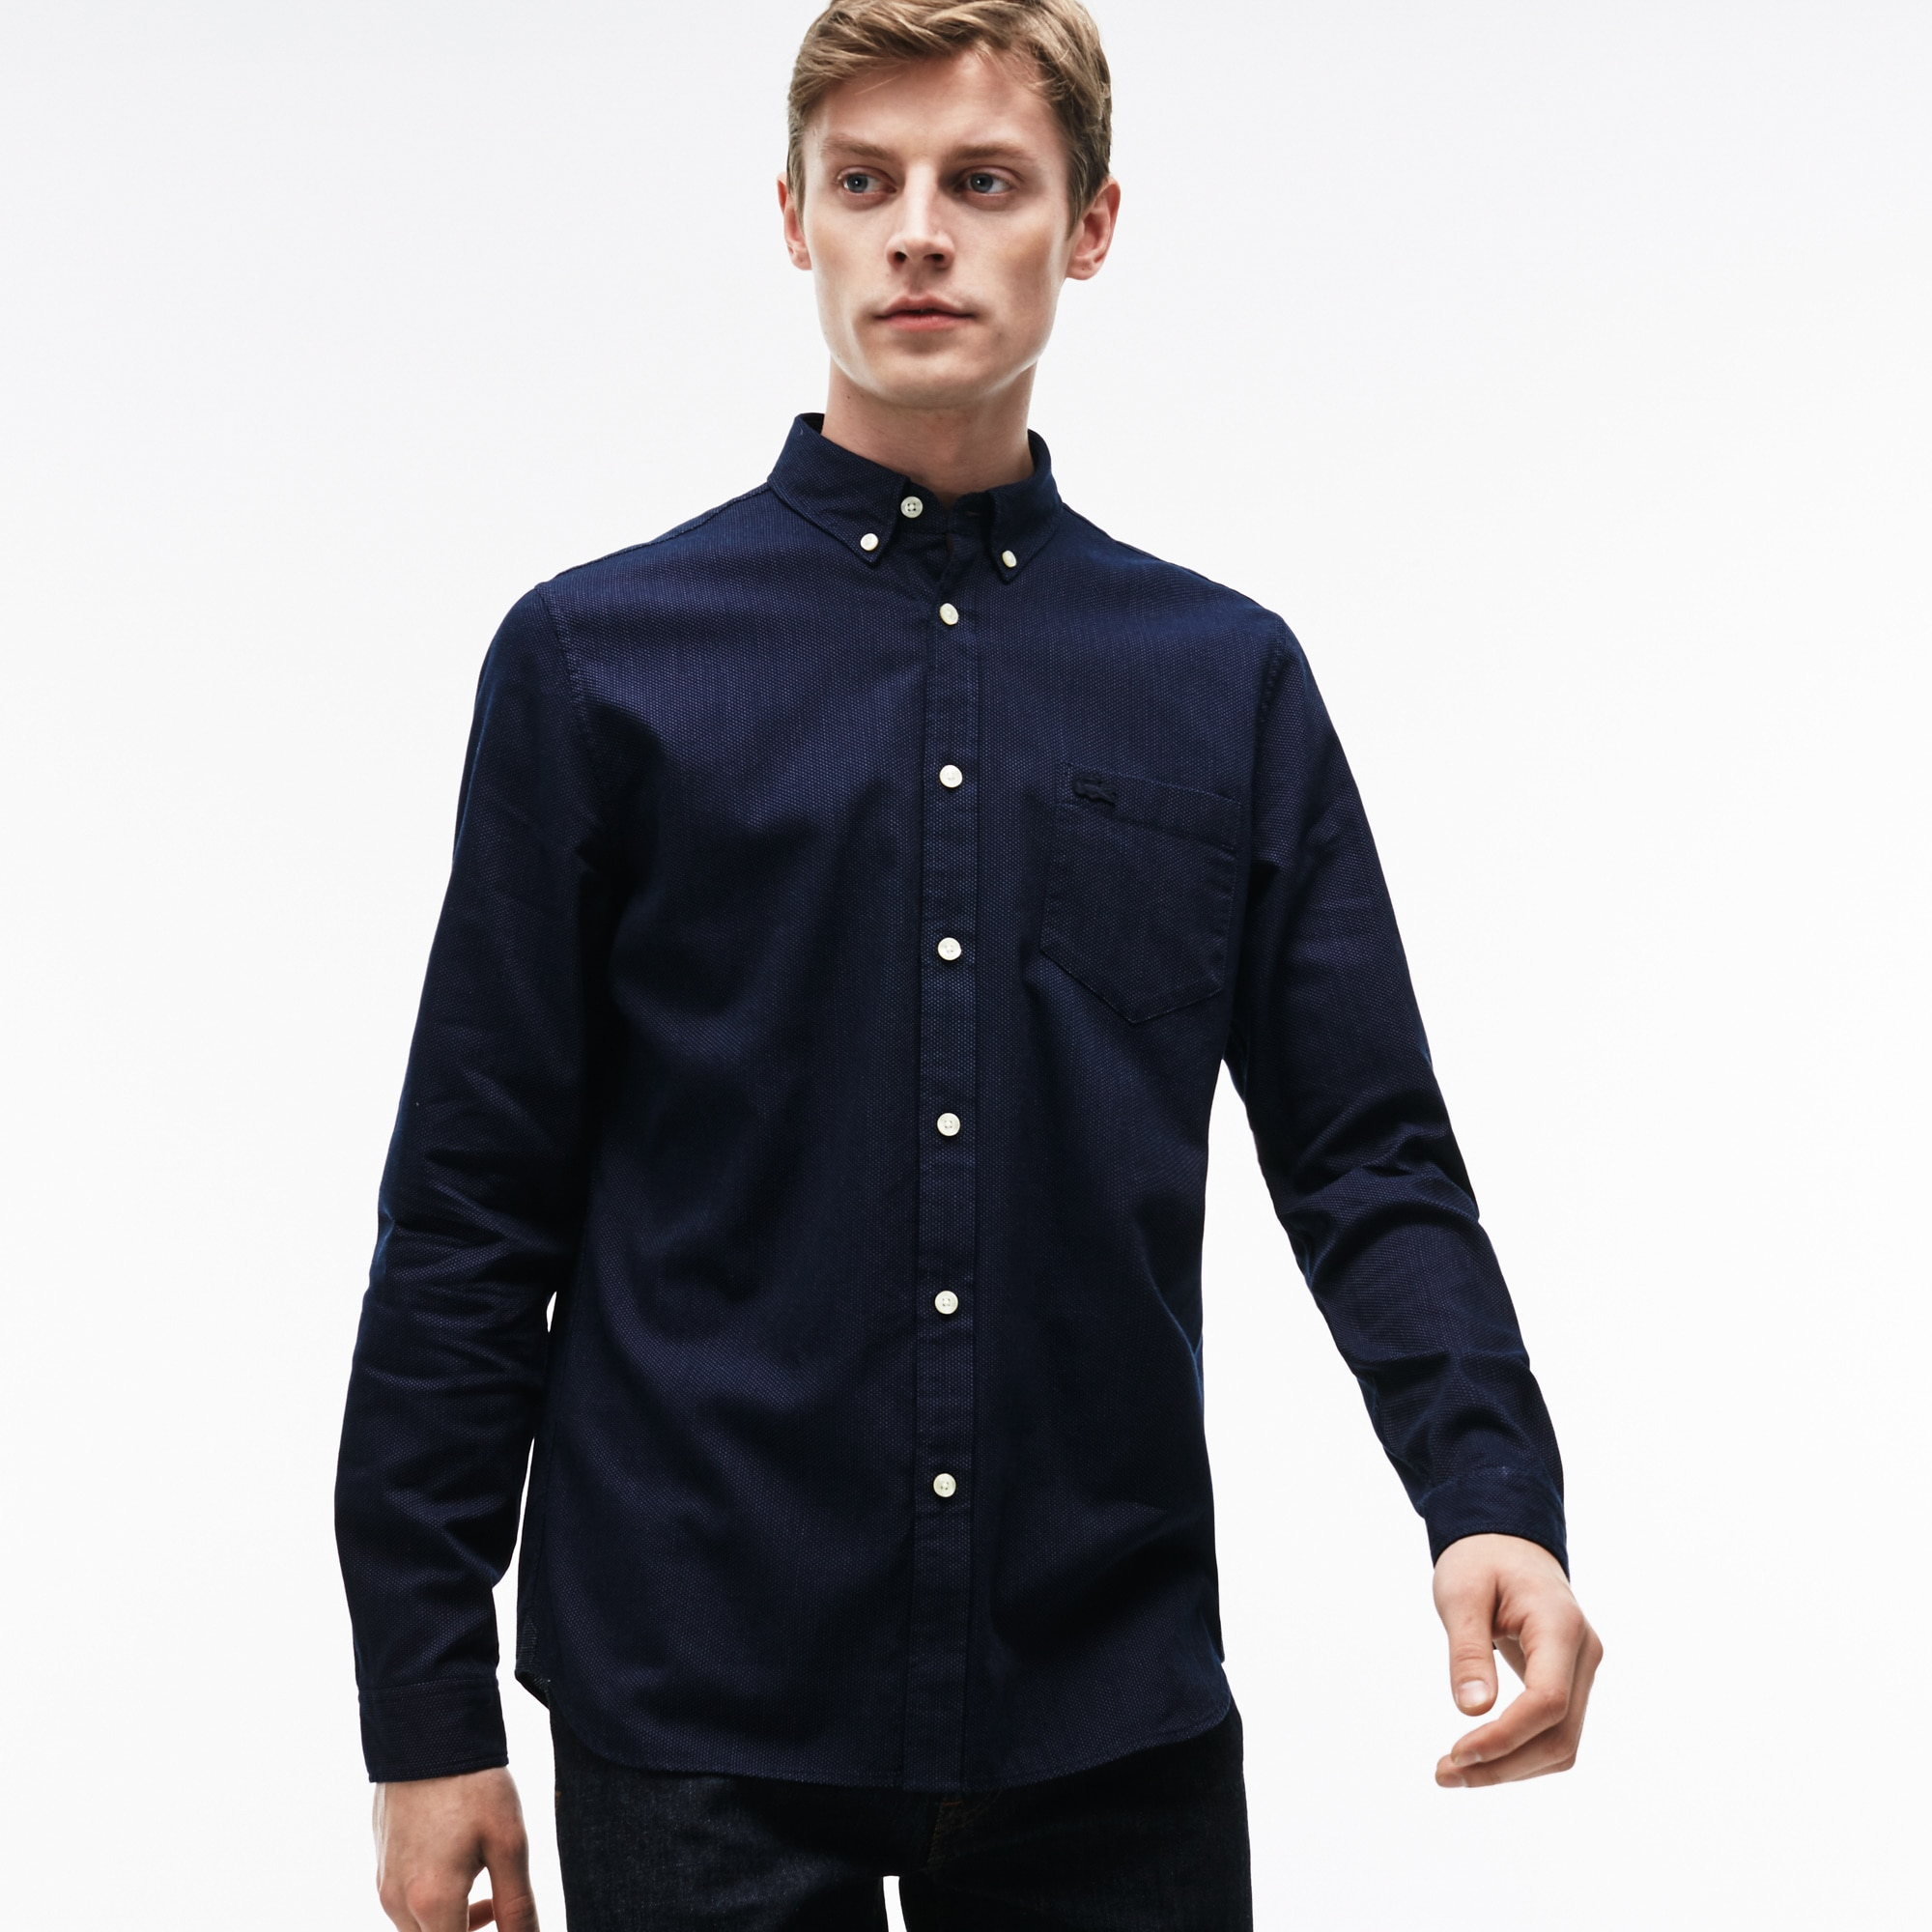 Men's Regular Fit Polka Dot Jacquard Poplin Shirt